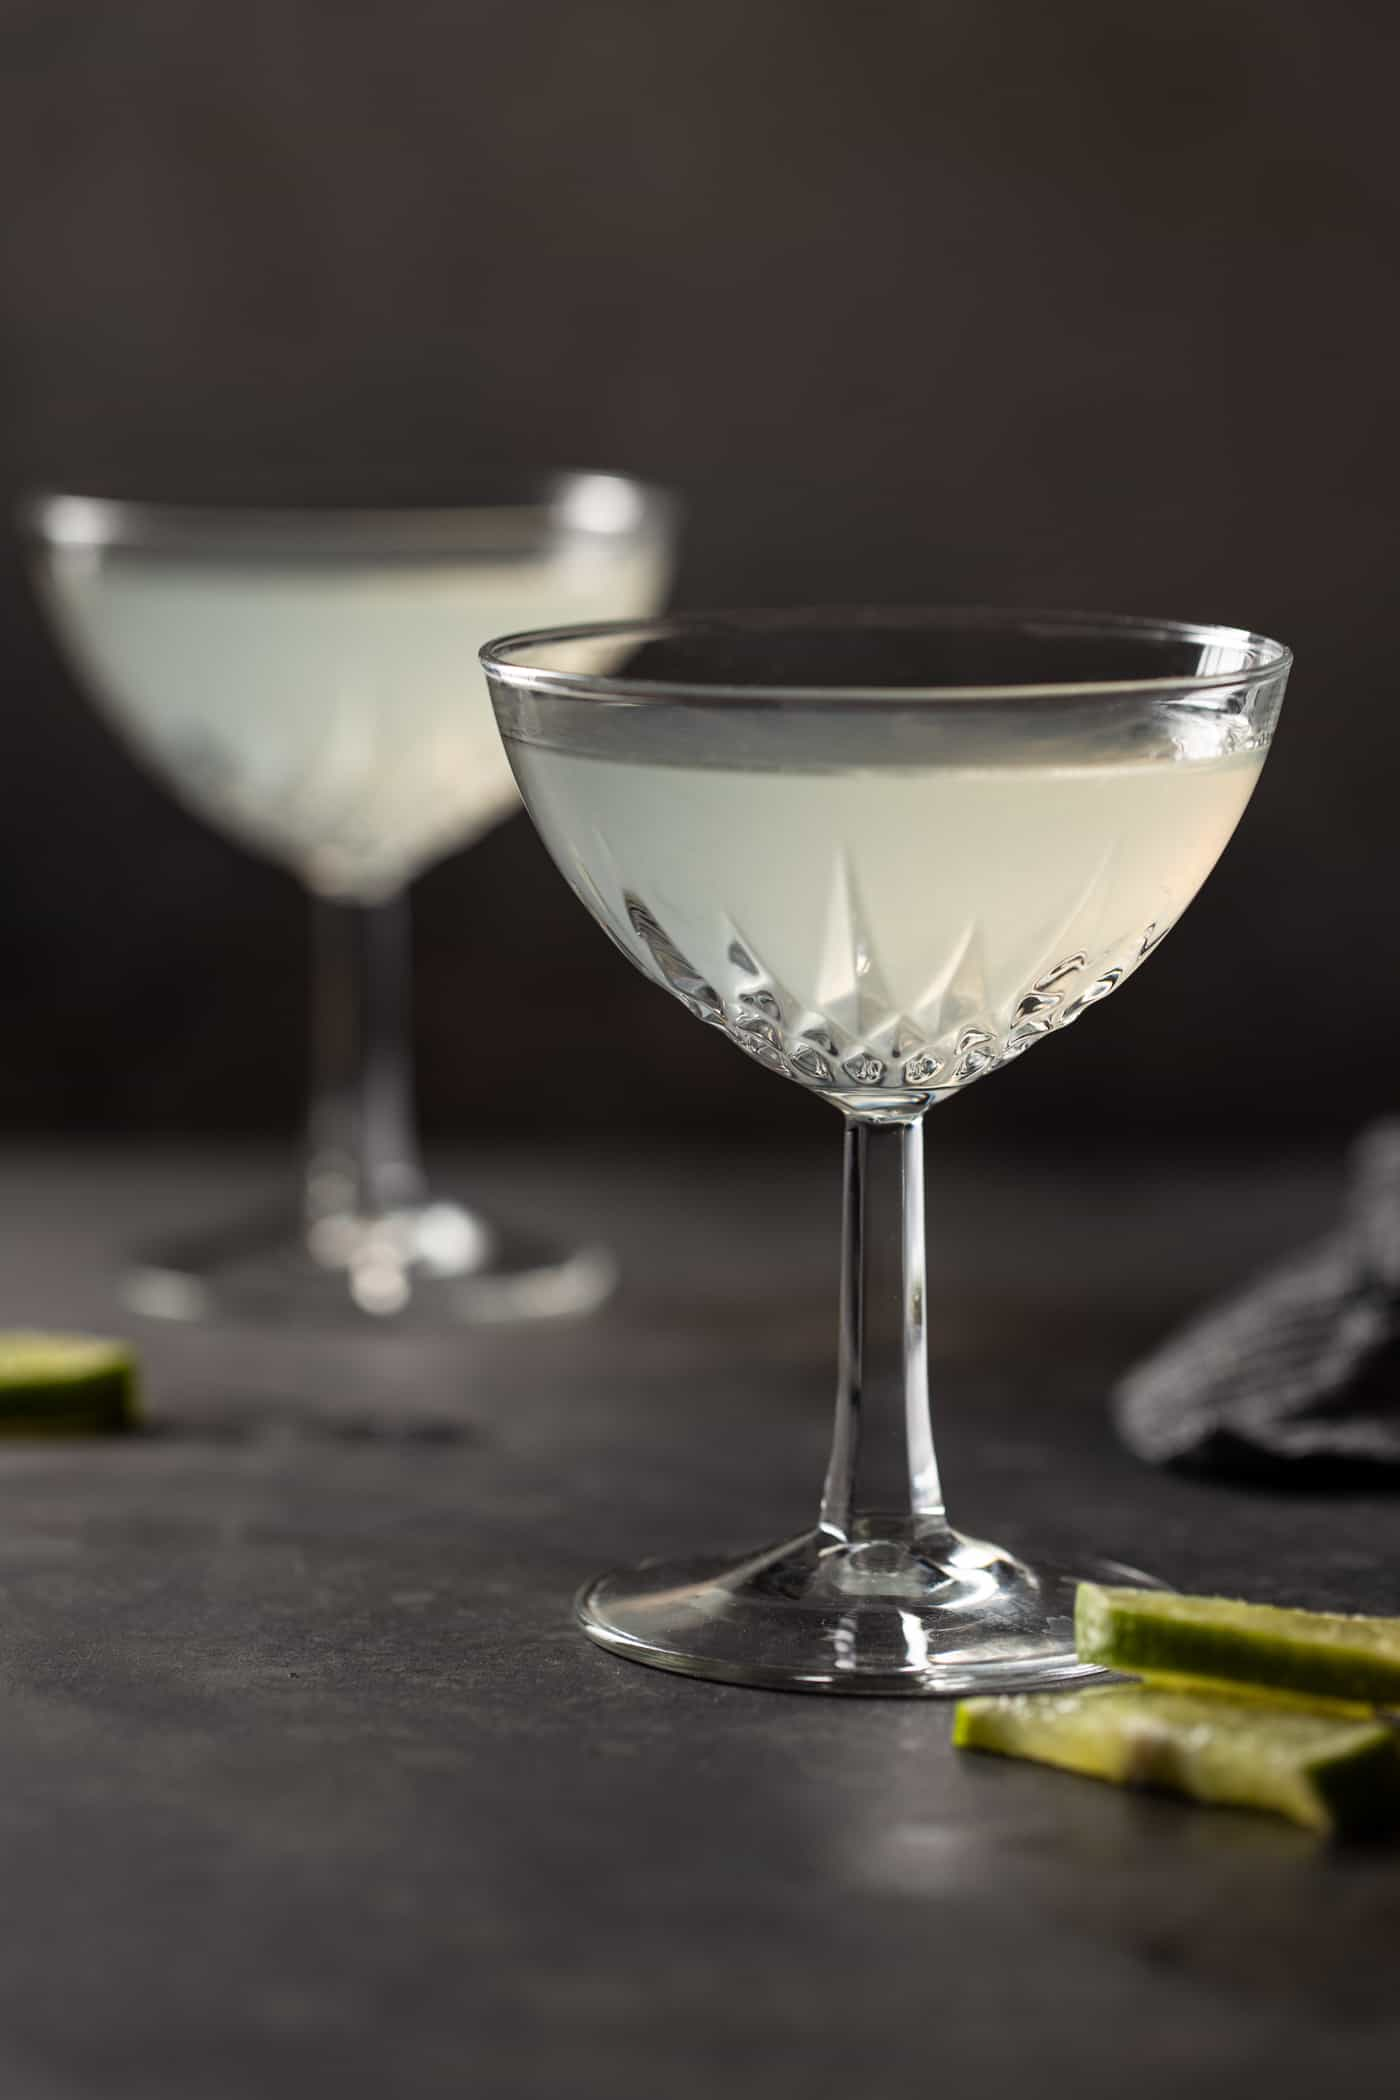 Two coupe glasses filled with Elderflower Gin Gimlet Cocktails on a dark wood board.